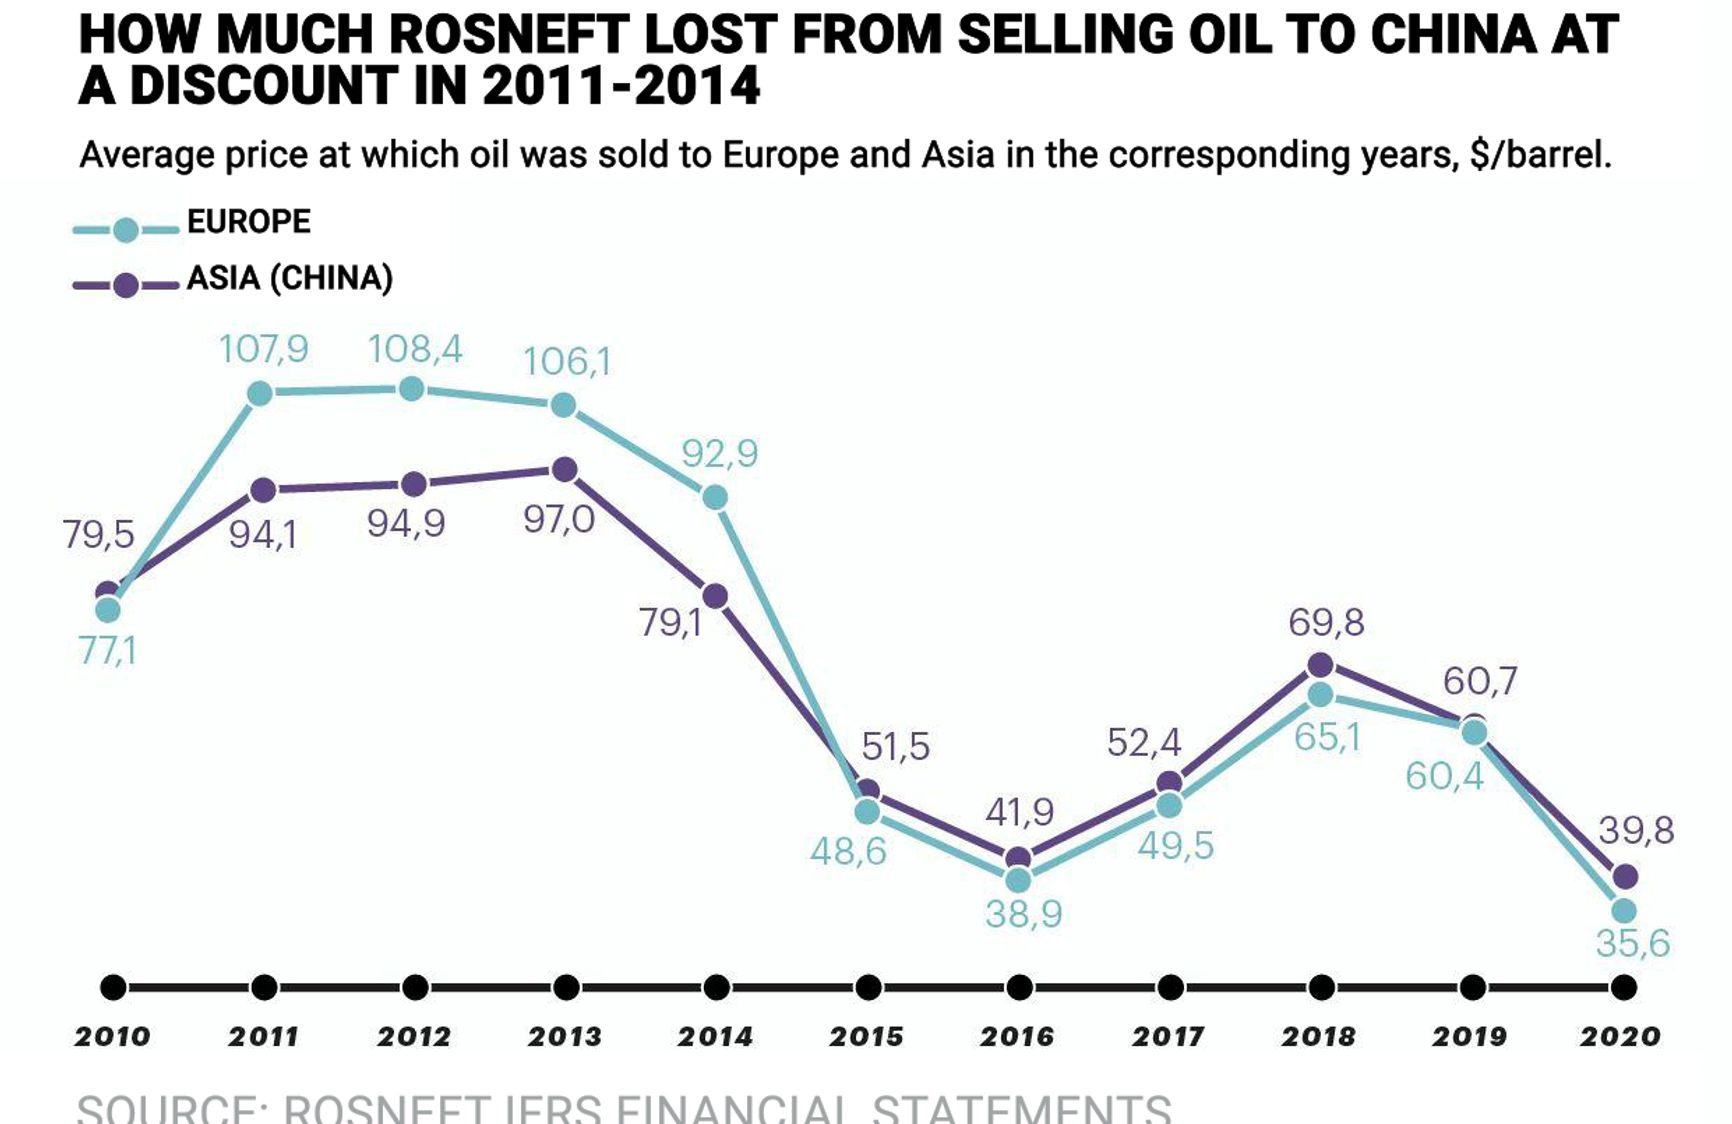 Average price at which oil was sold to Europe and Asia in the corresponding years, $/barrel